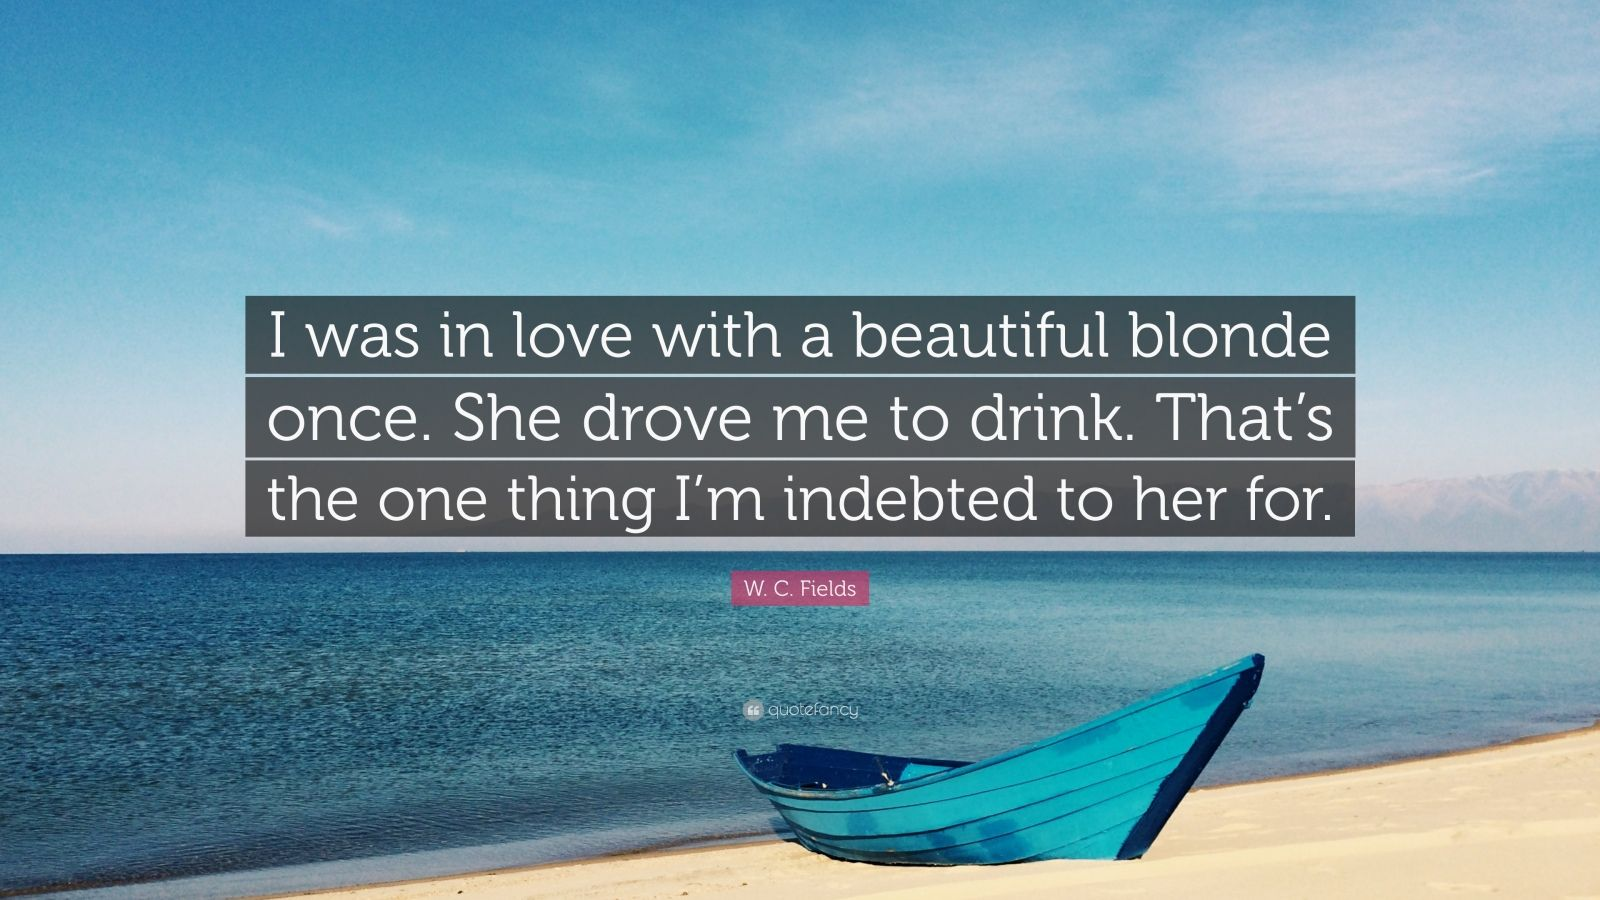 """W. C. Fields Quote: """"I was in love with a beautiful blonde once. She drove me to drink. That's the one thing I'm indebted to her for."""""""